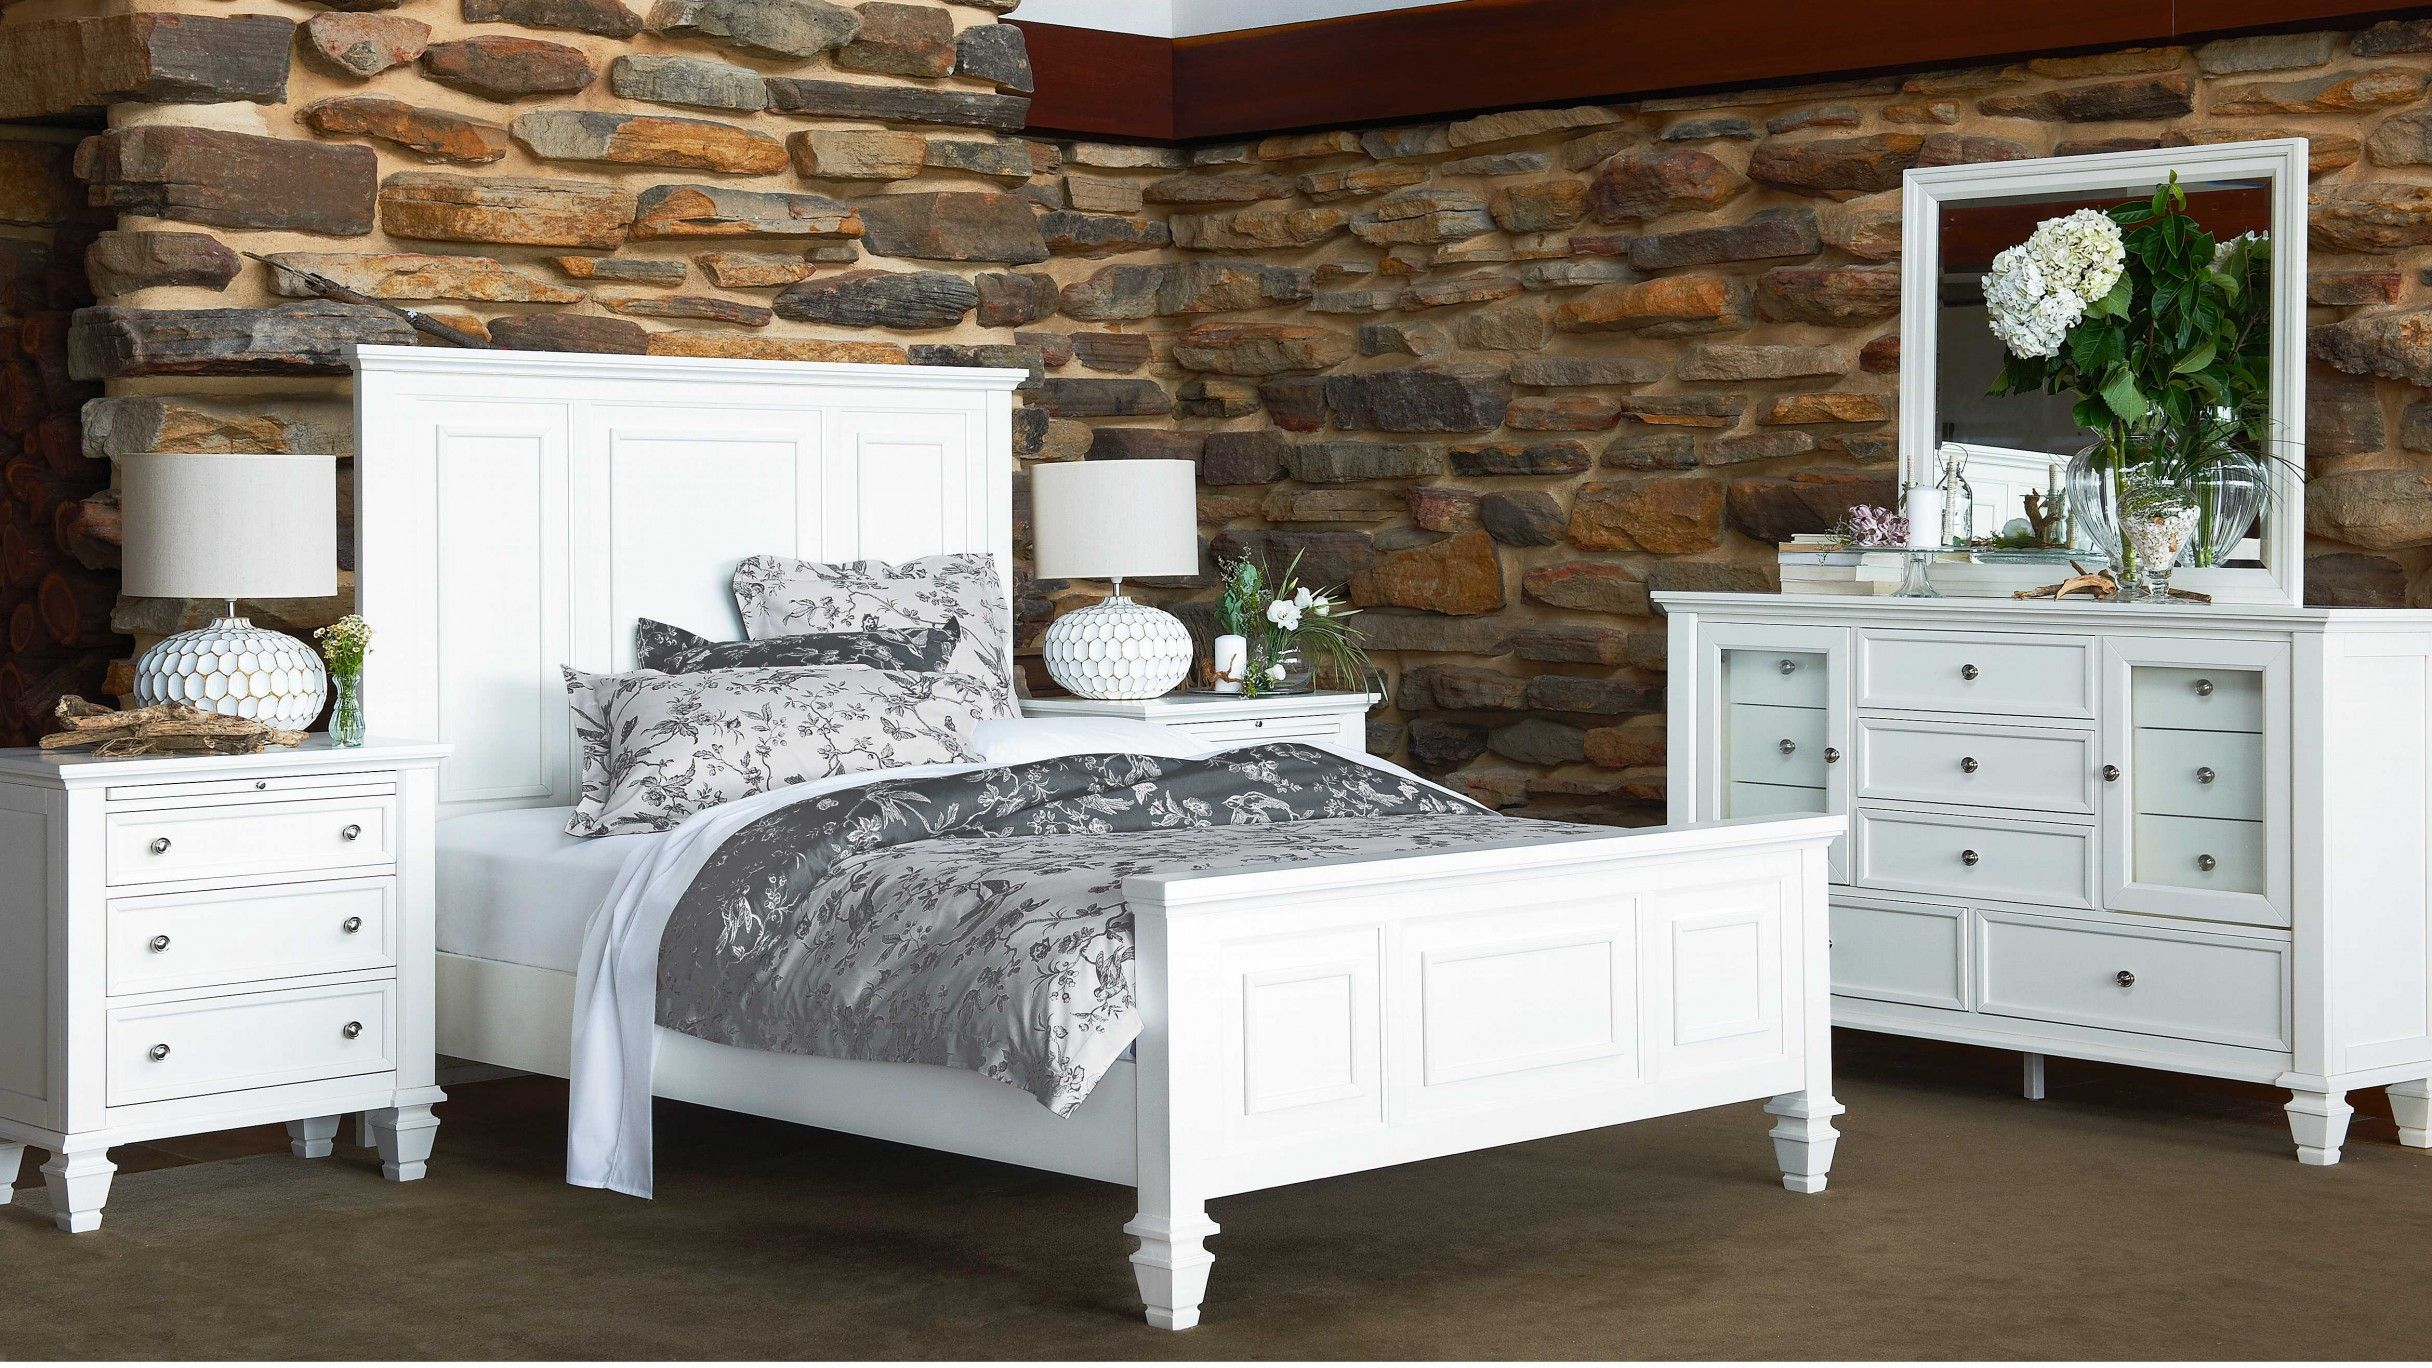 Glenmore 4 Piece Queen Bedroom Suite with Dresser Bedroom